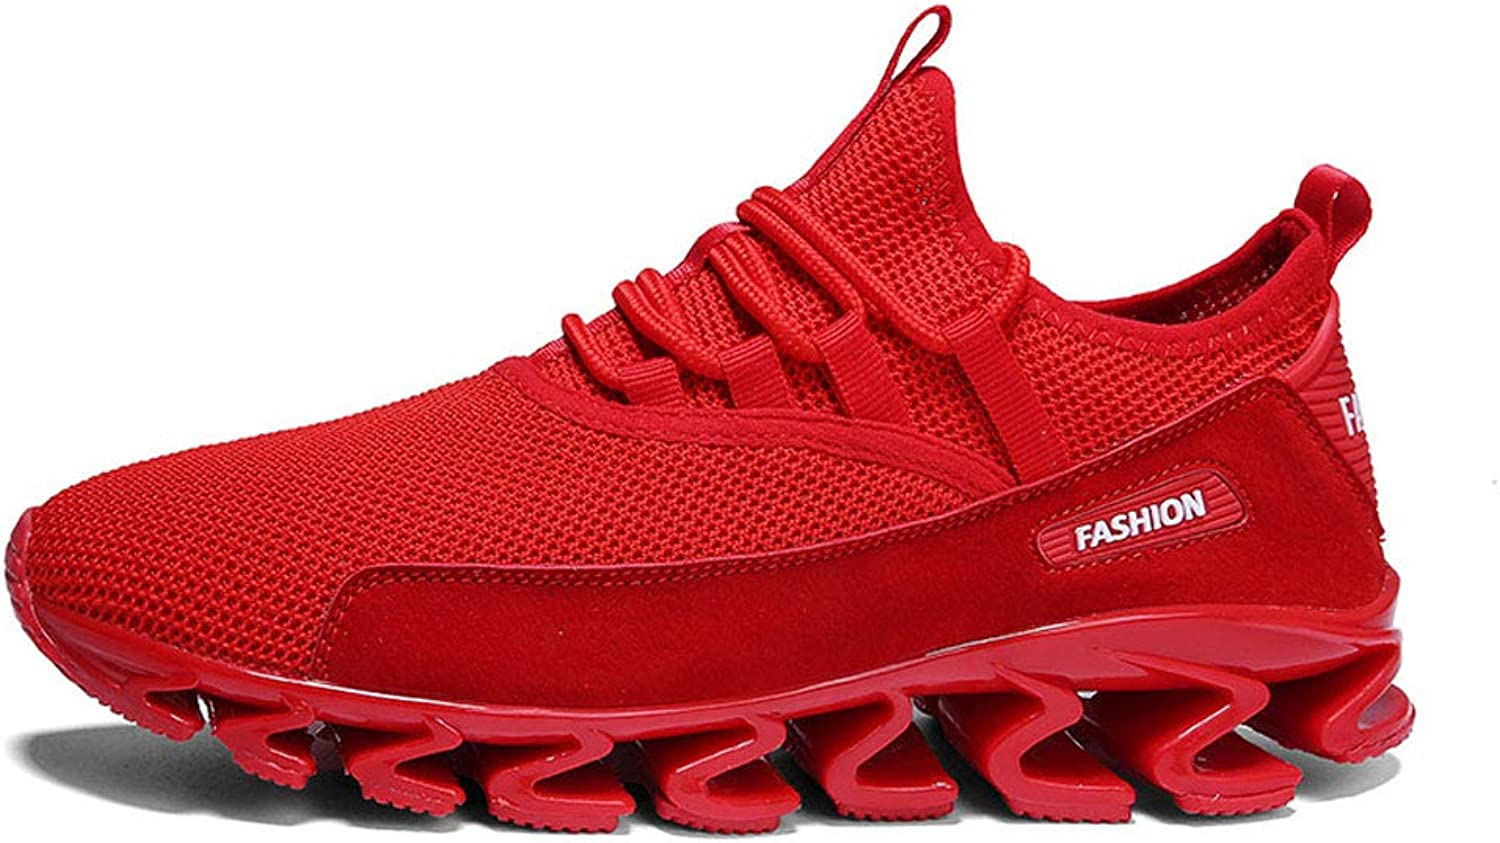 FFSH Sports shoes Flying Woven Breathable Sports Casual Running Men's shoes wild-red-47